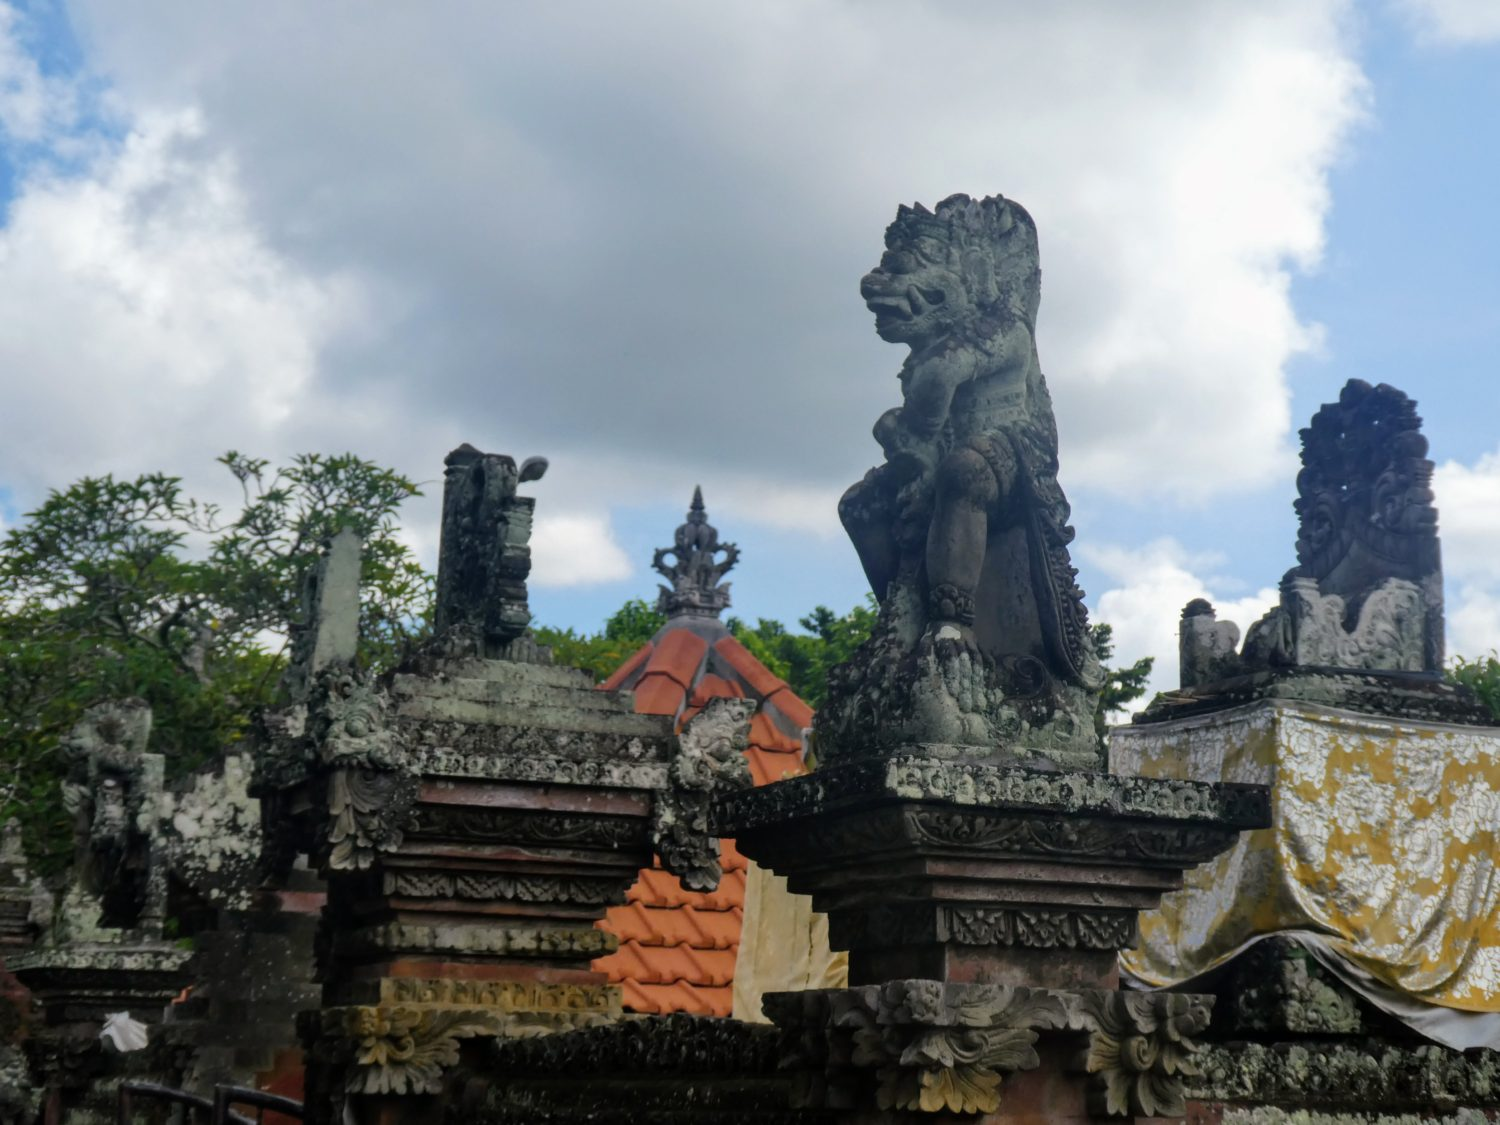 Temple Statues | Photo Diary: Our Day in Bali | Gluten Free Horizons